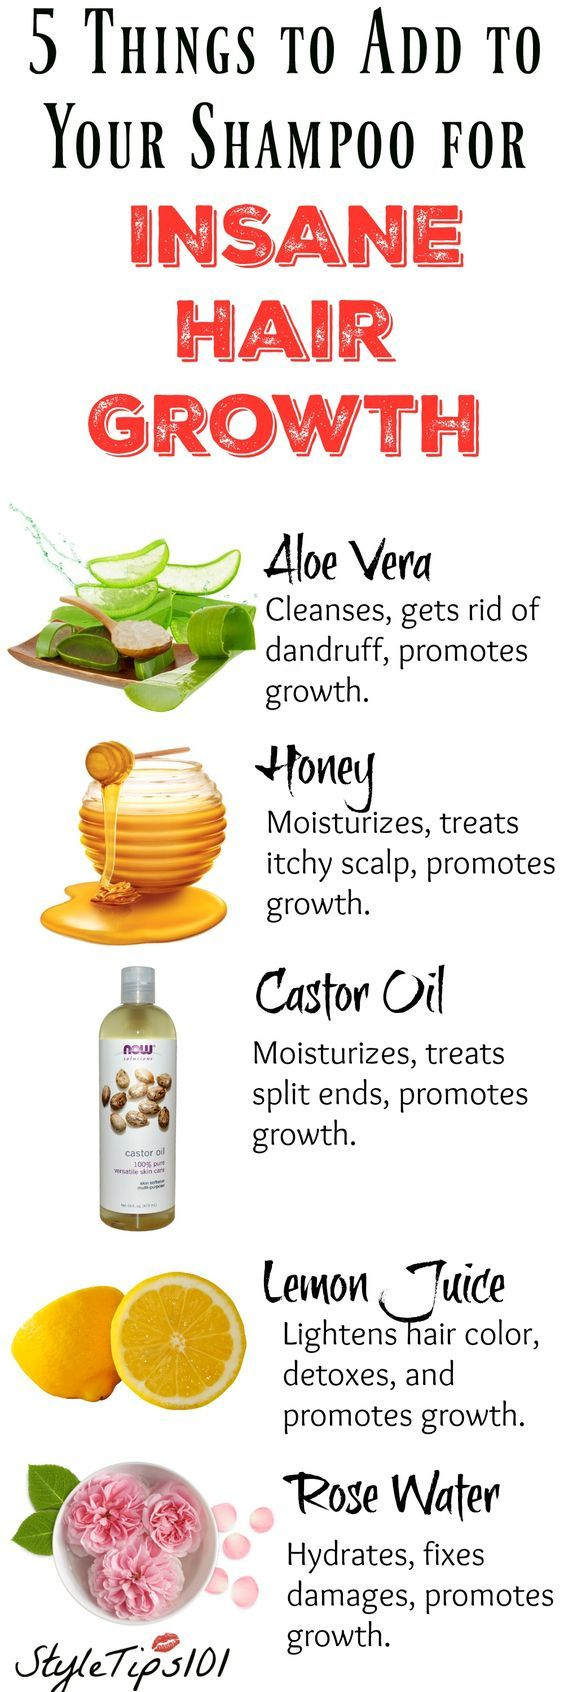 You could definitely add some natural ingredients in your shampoo to give your hair that 'extra' nourishment. Here are some natural ingredients that you could add in your regular shampoo to strengthen your hair, reduce hair fall and make your hair grow like weed!